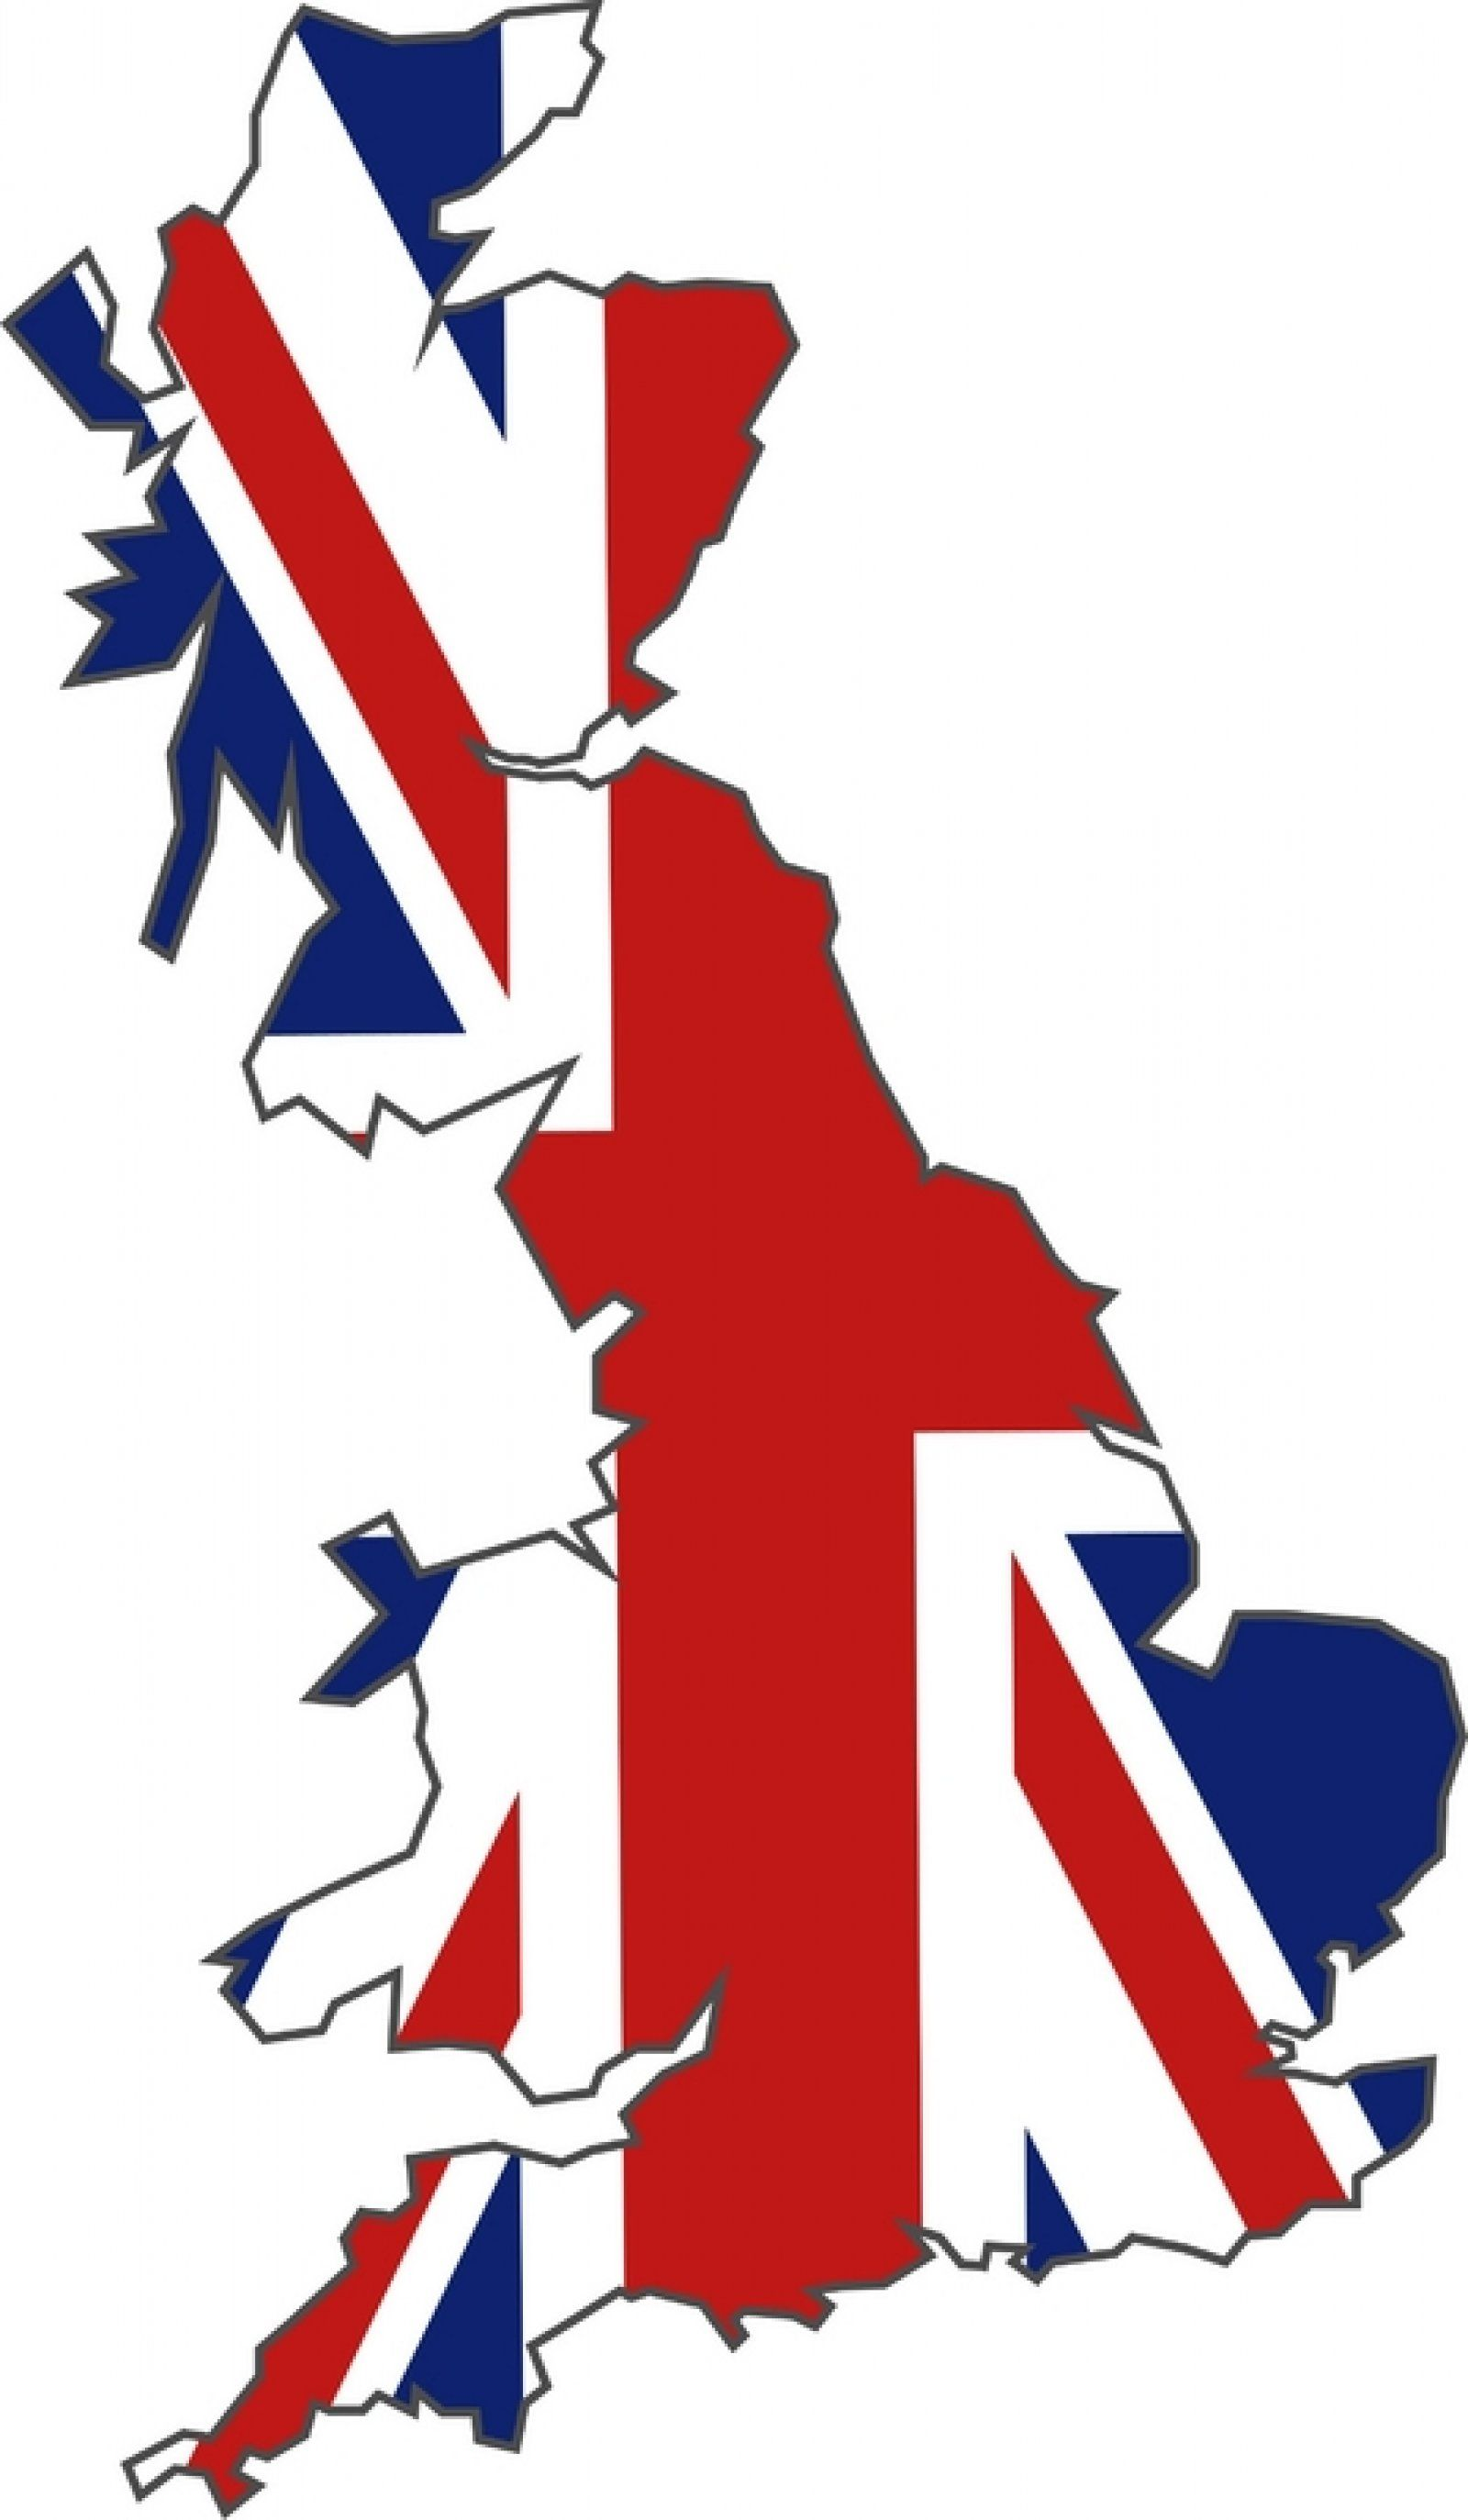 Map Of Uk Hd.Wallpapers Europe Map England Flag City Your Hd Wallpaper Id52586